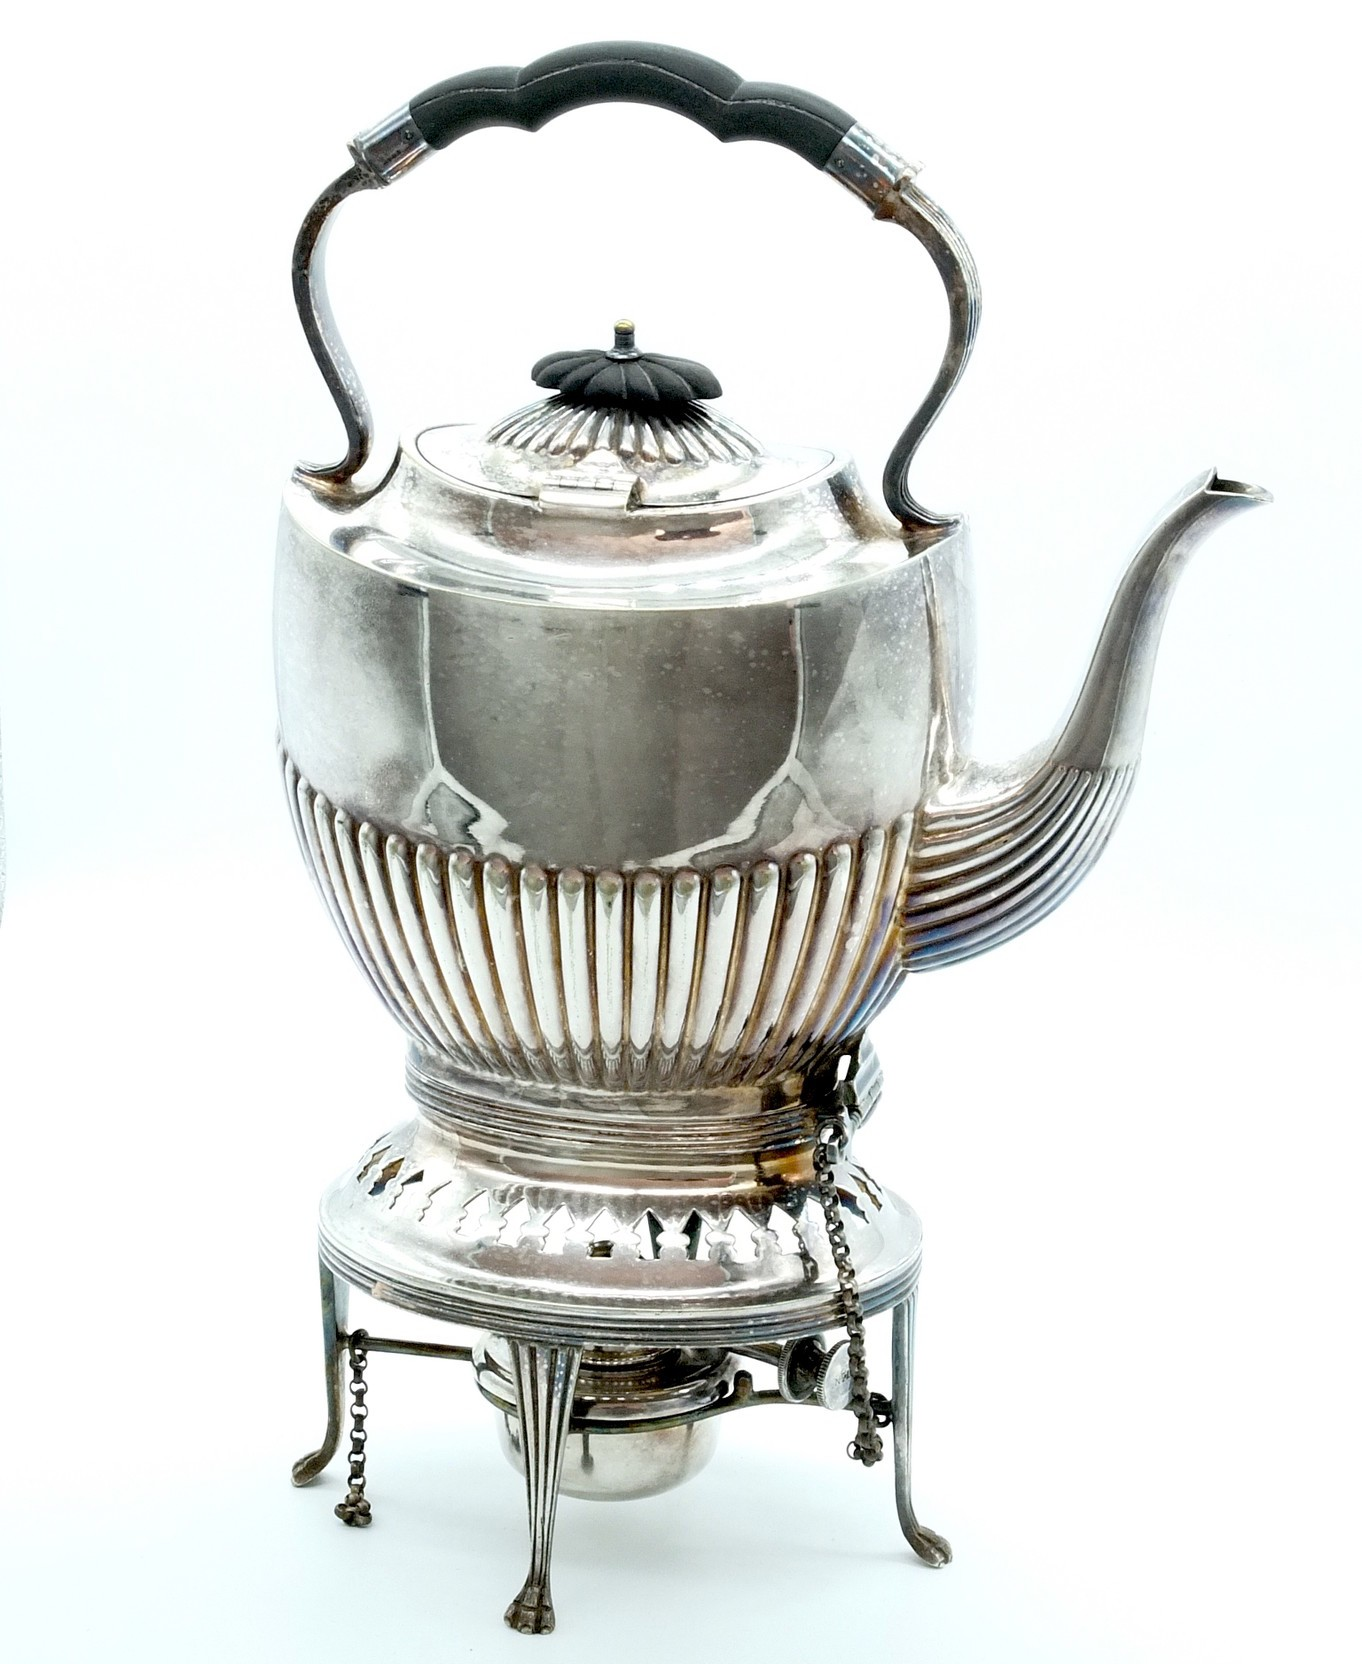 'Walker and Hall Silver Plate Spirit Kettle'